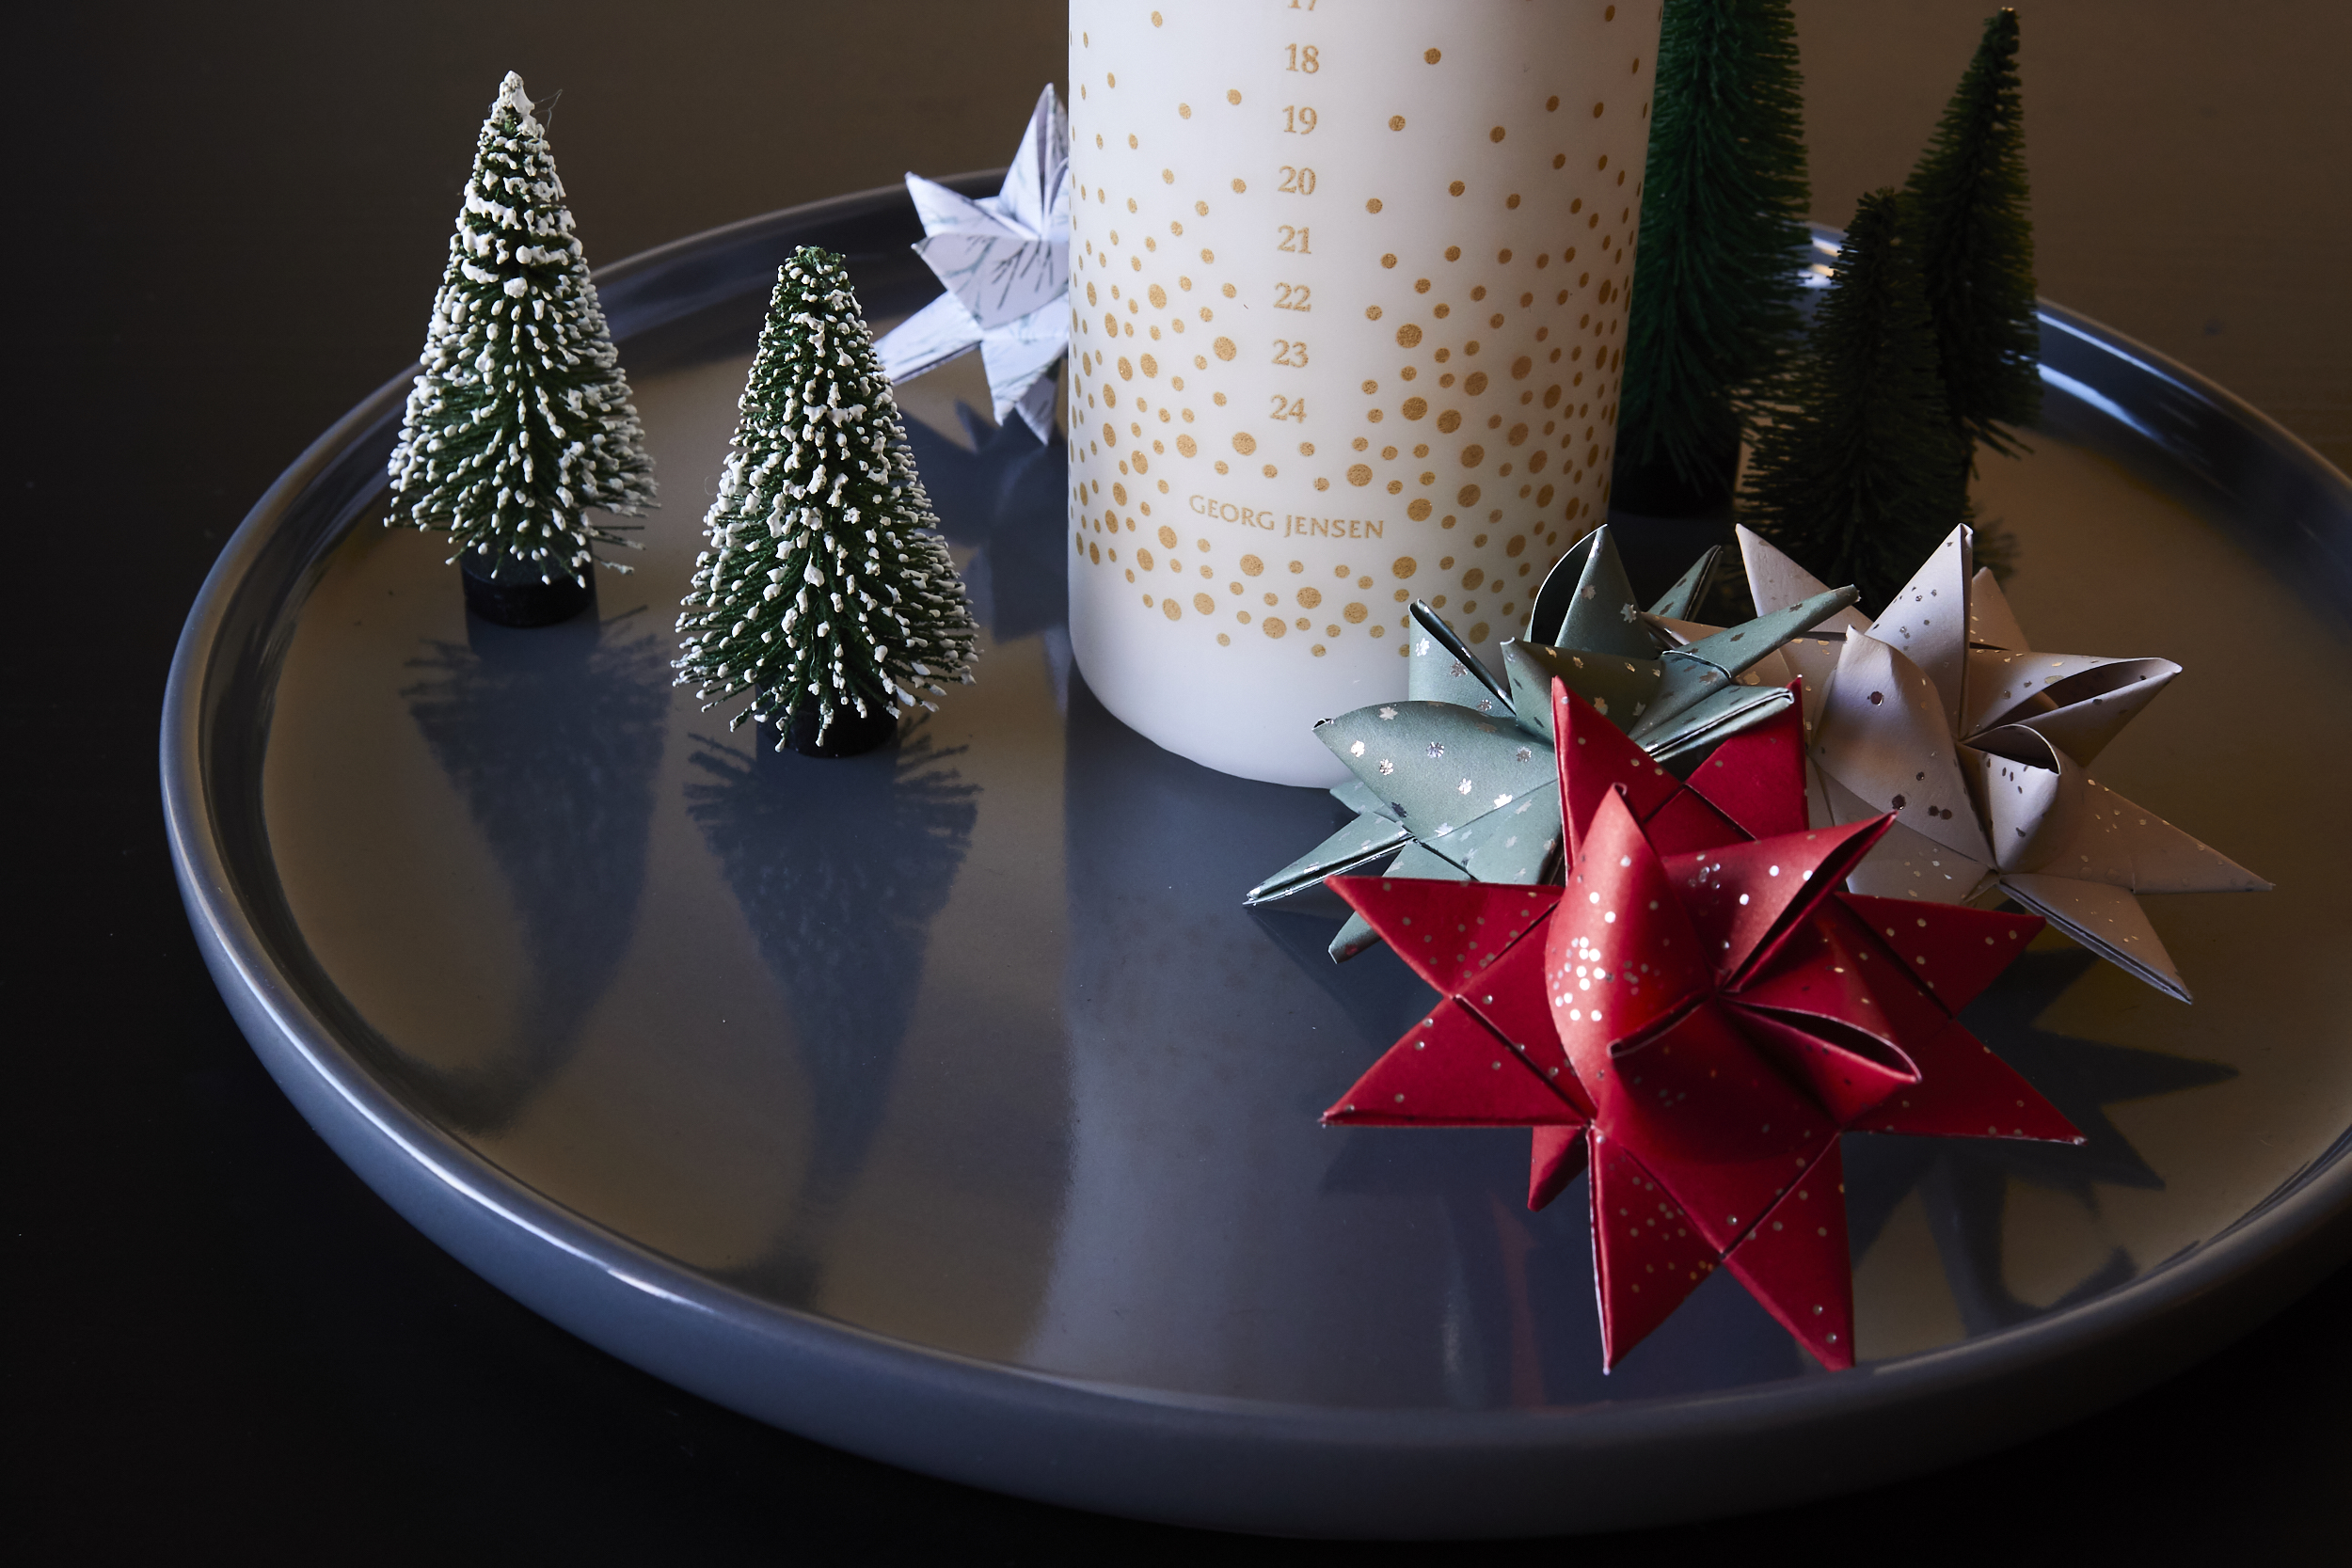 Paper Christmas Stars (Julestjerner) - the paper stars make great Christmas decorations | In Carina's Kitchen